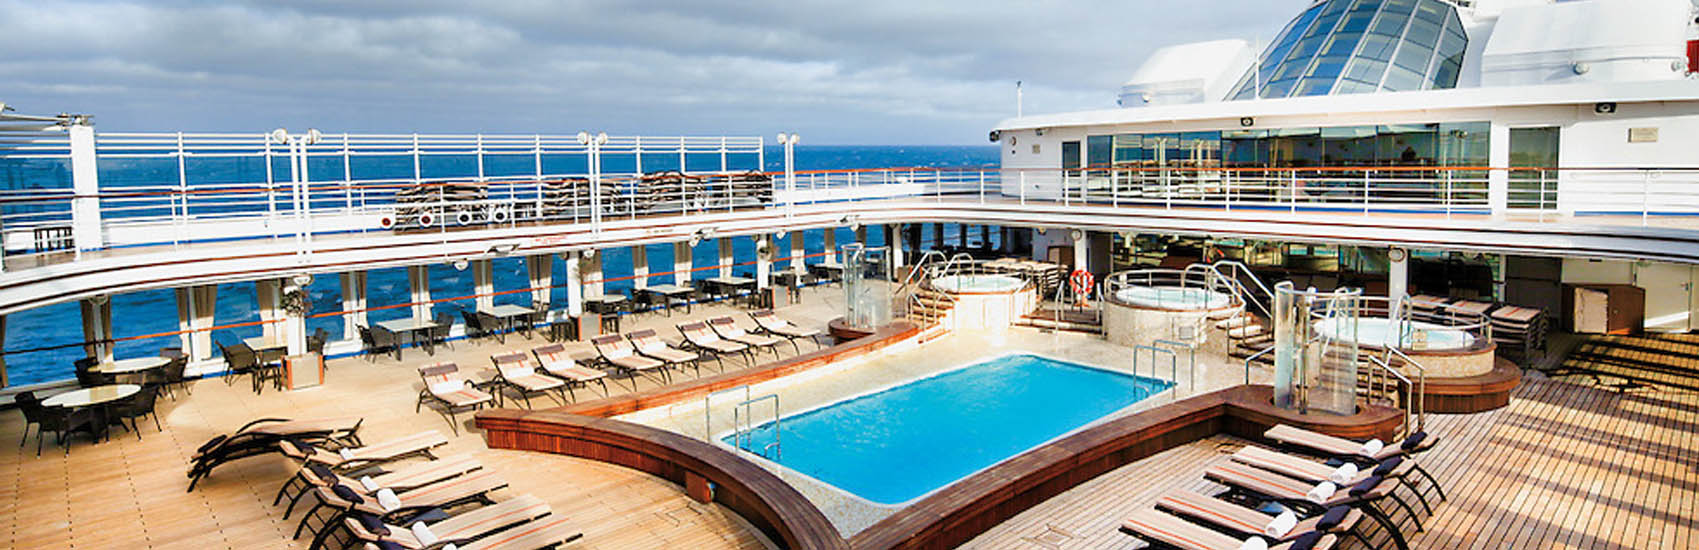 Free Airfare with Silversea Cruises 3